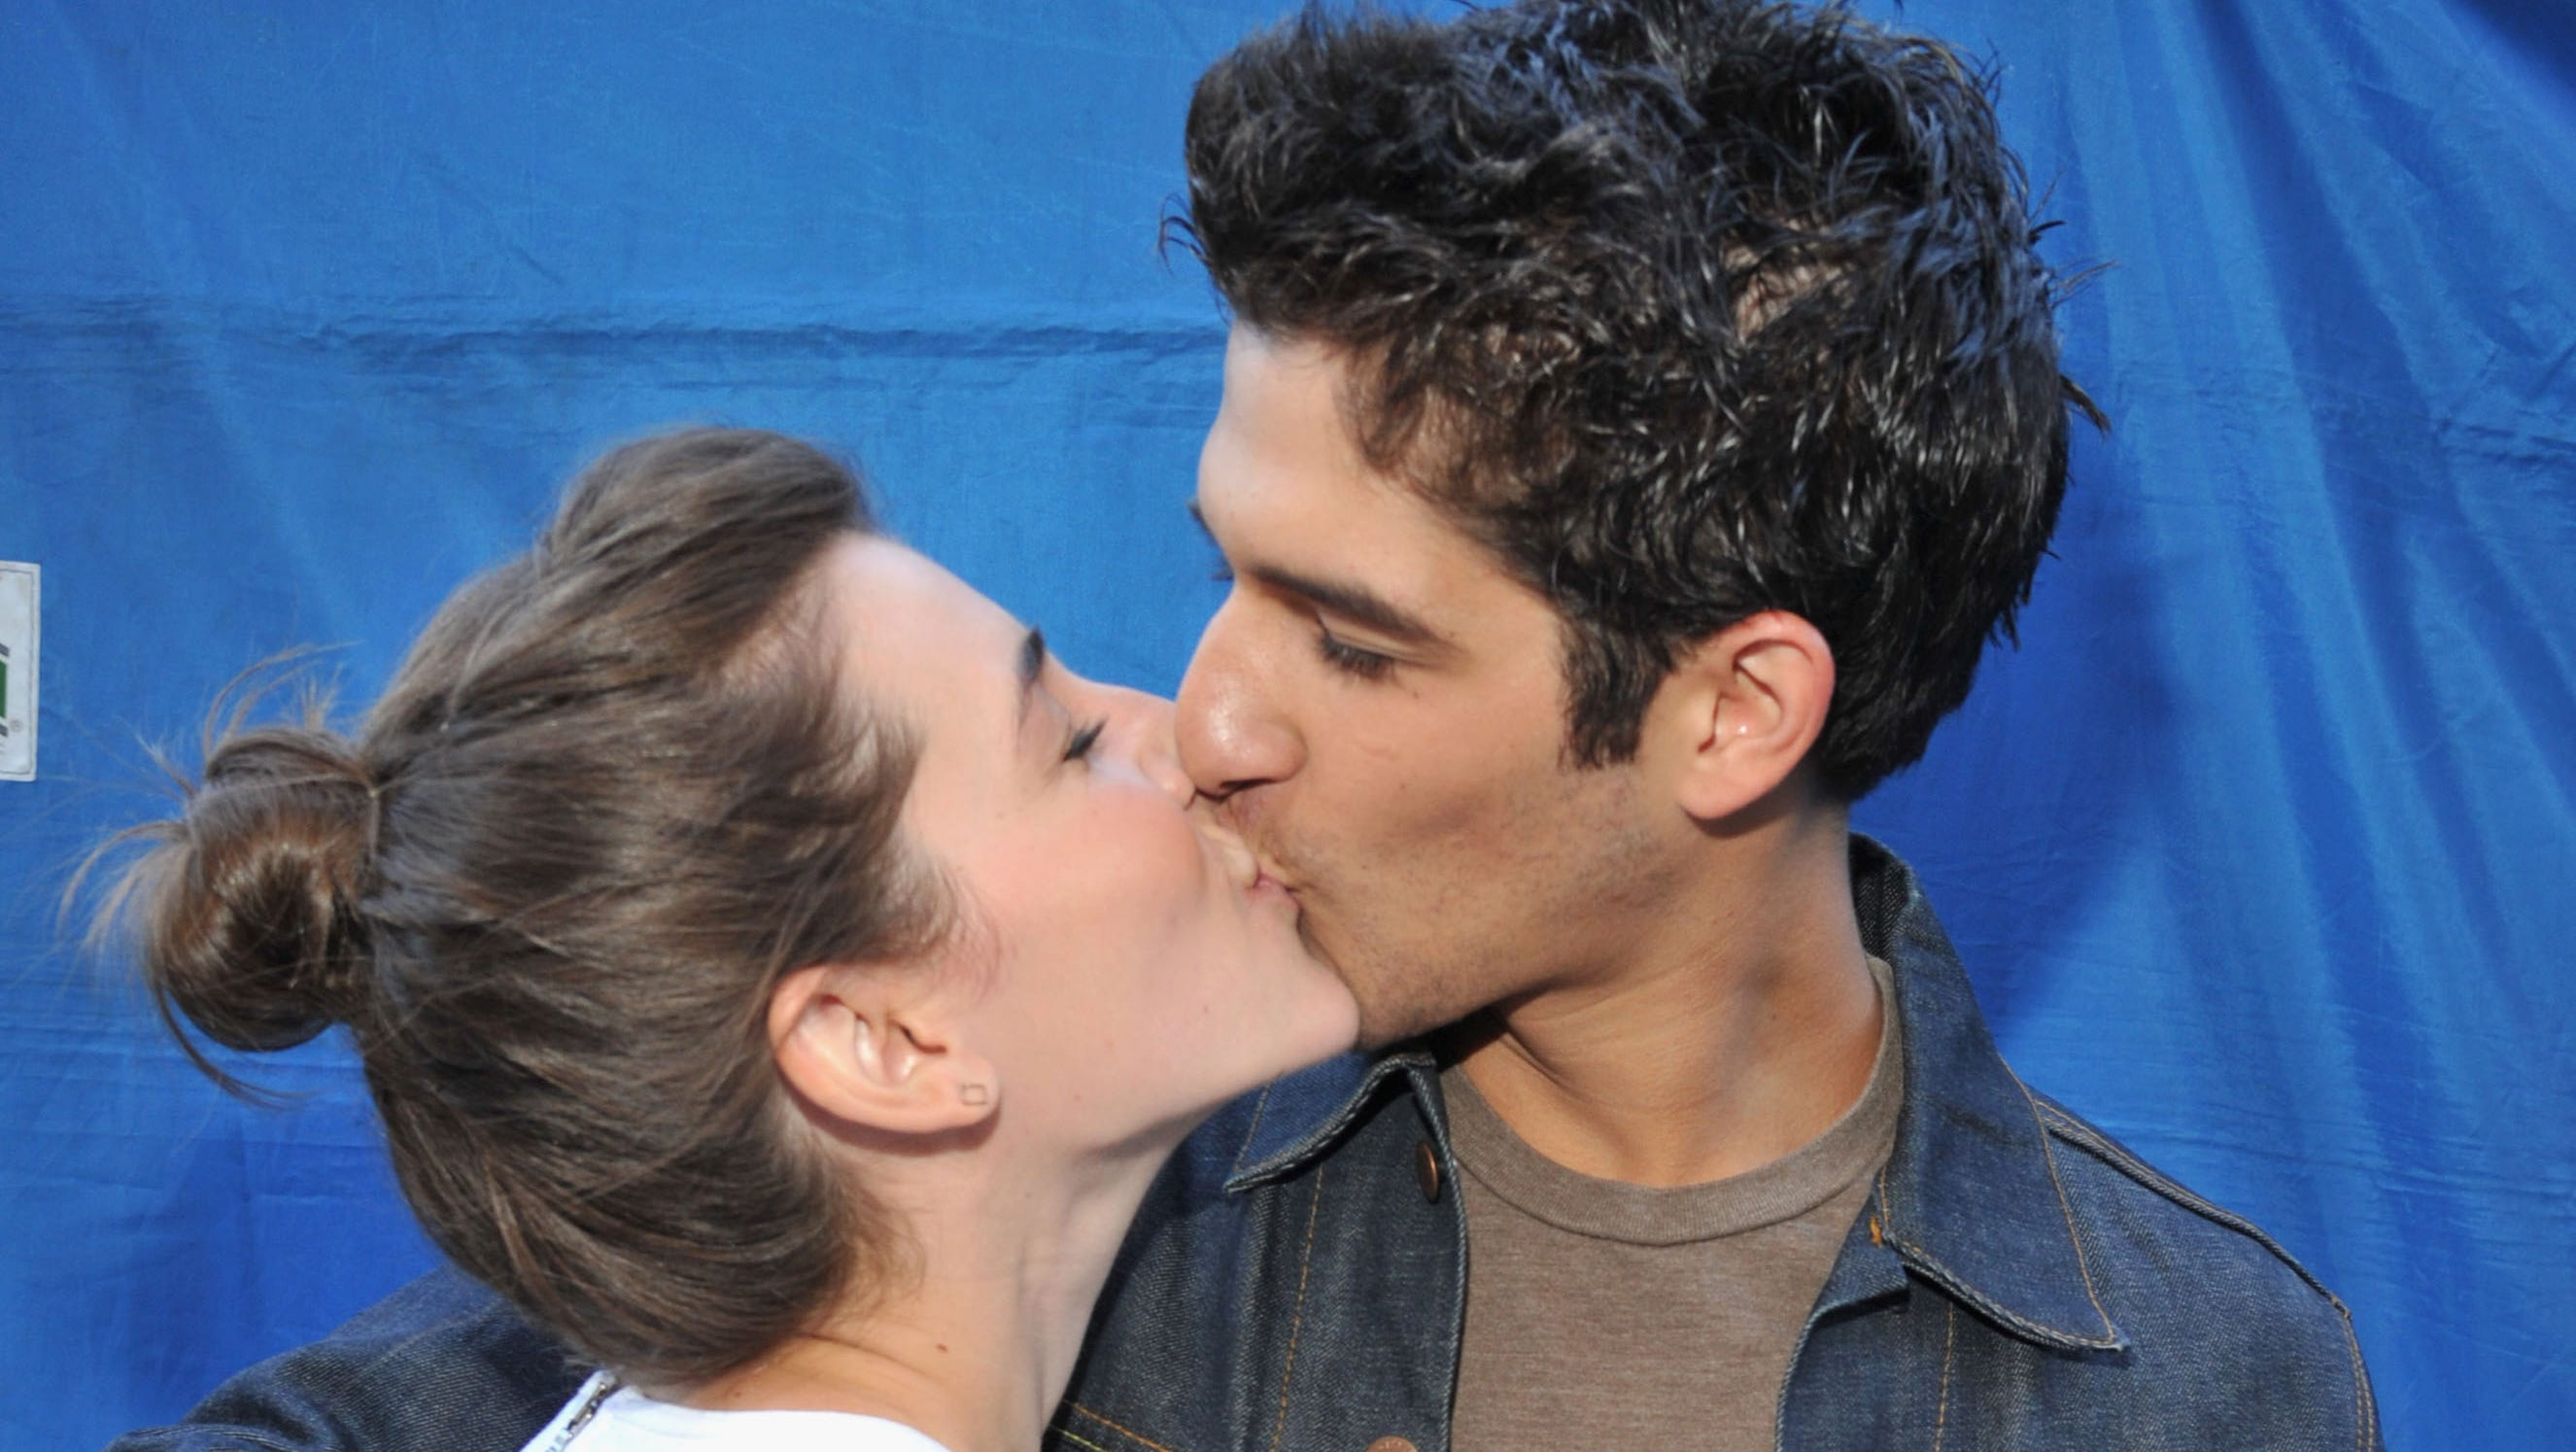 Seana Gorlick and actor Tyler Posey share a moment.